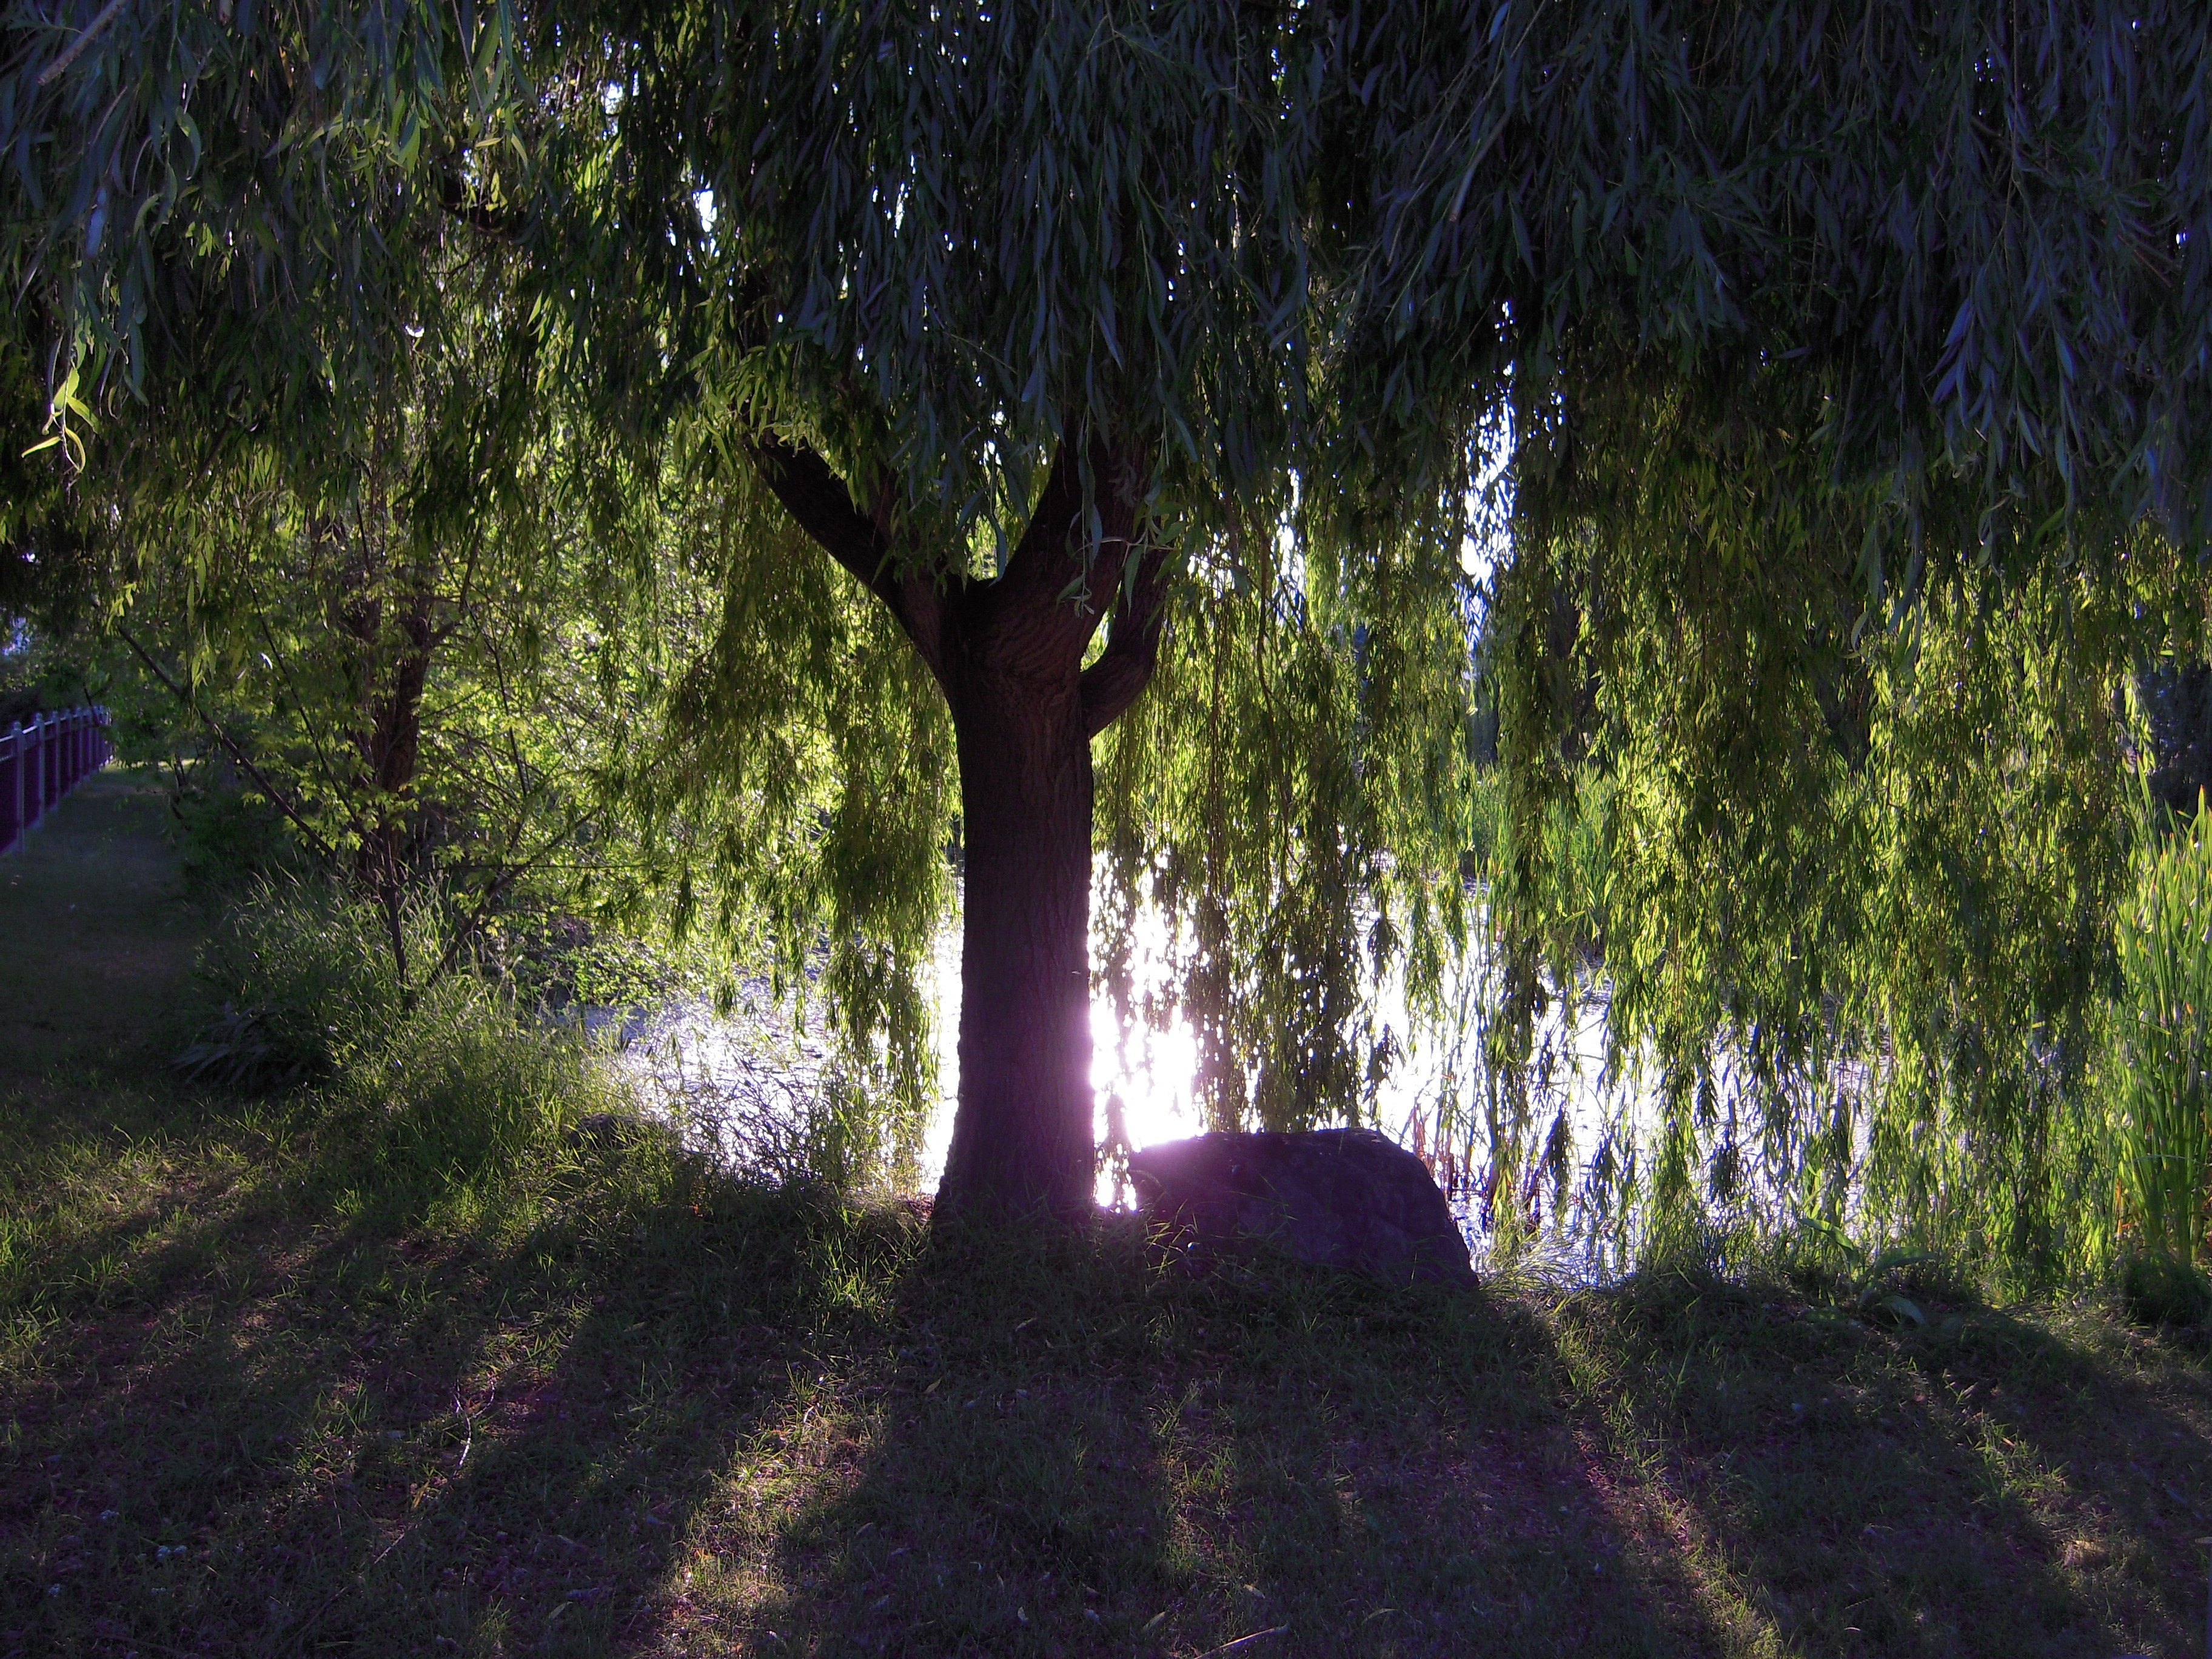 Weeping-Willow-wallpaper-wp540946